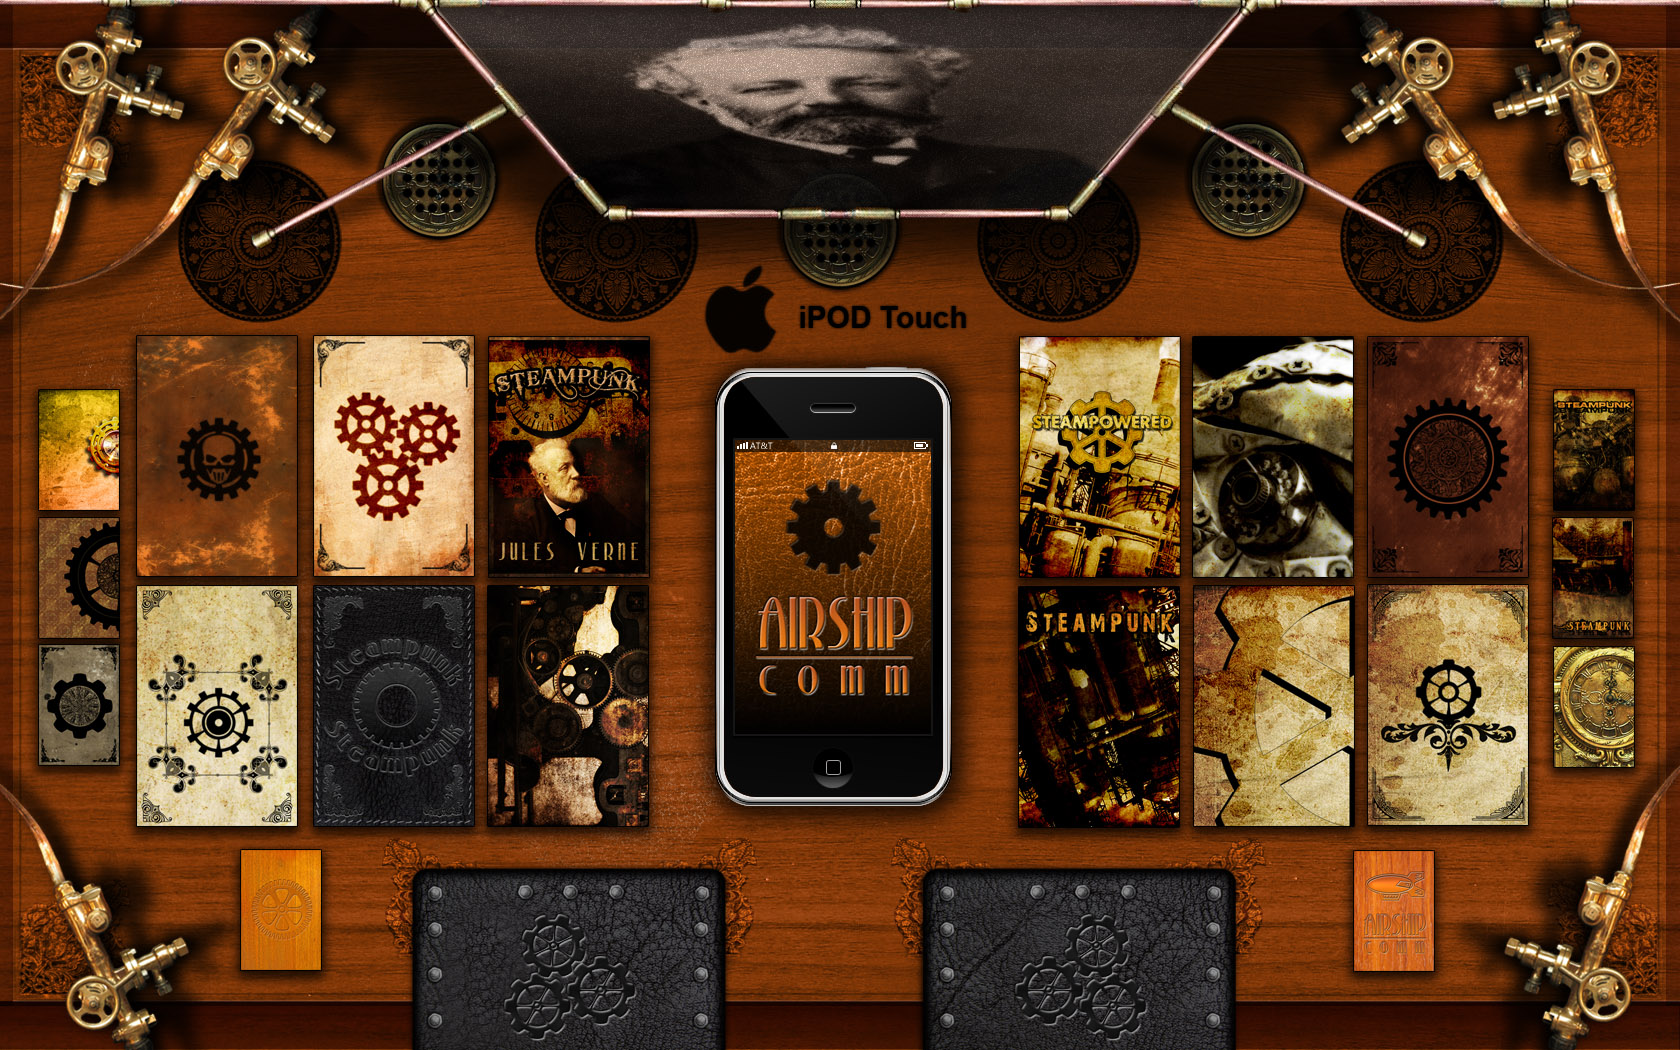 Steampunk Theme Ipod Touch By Inception8 On Deviantart